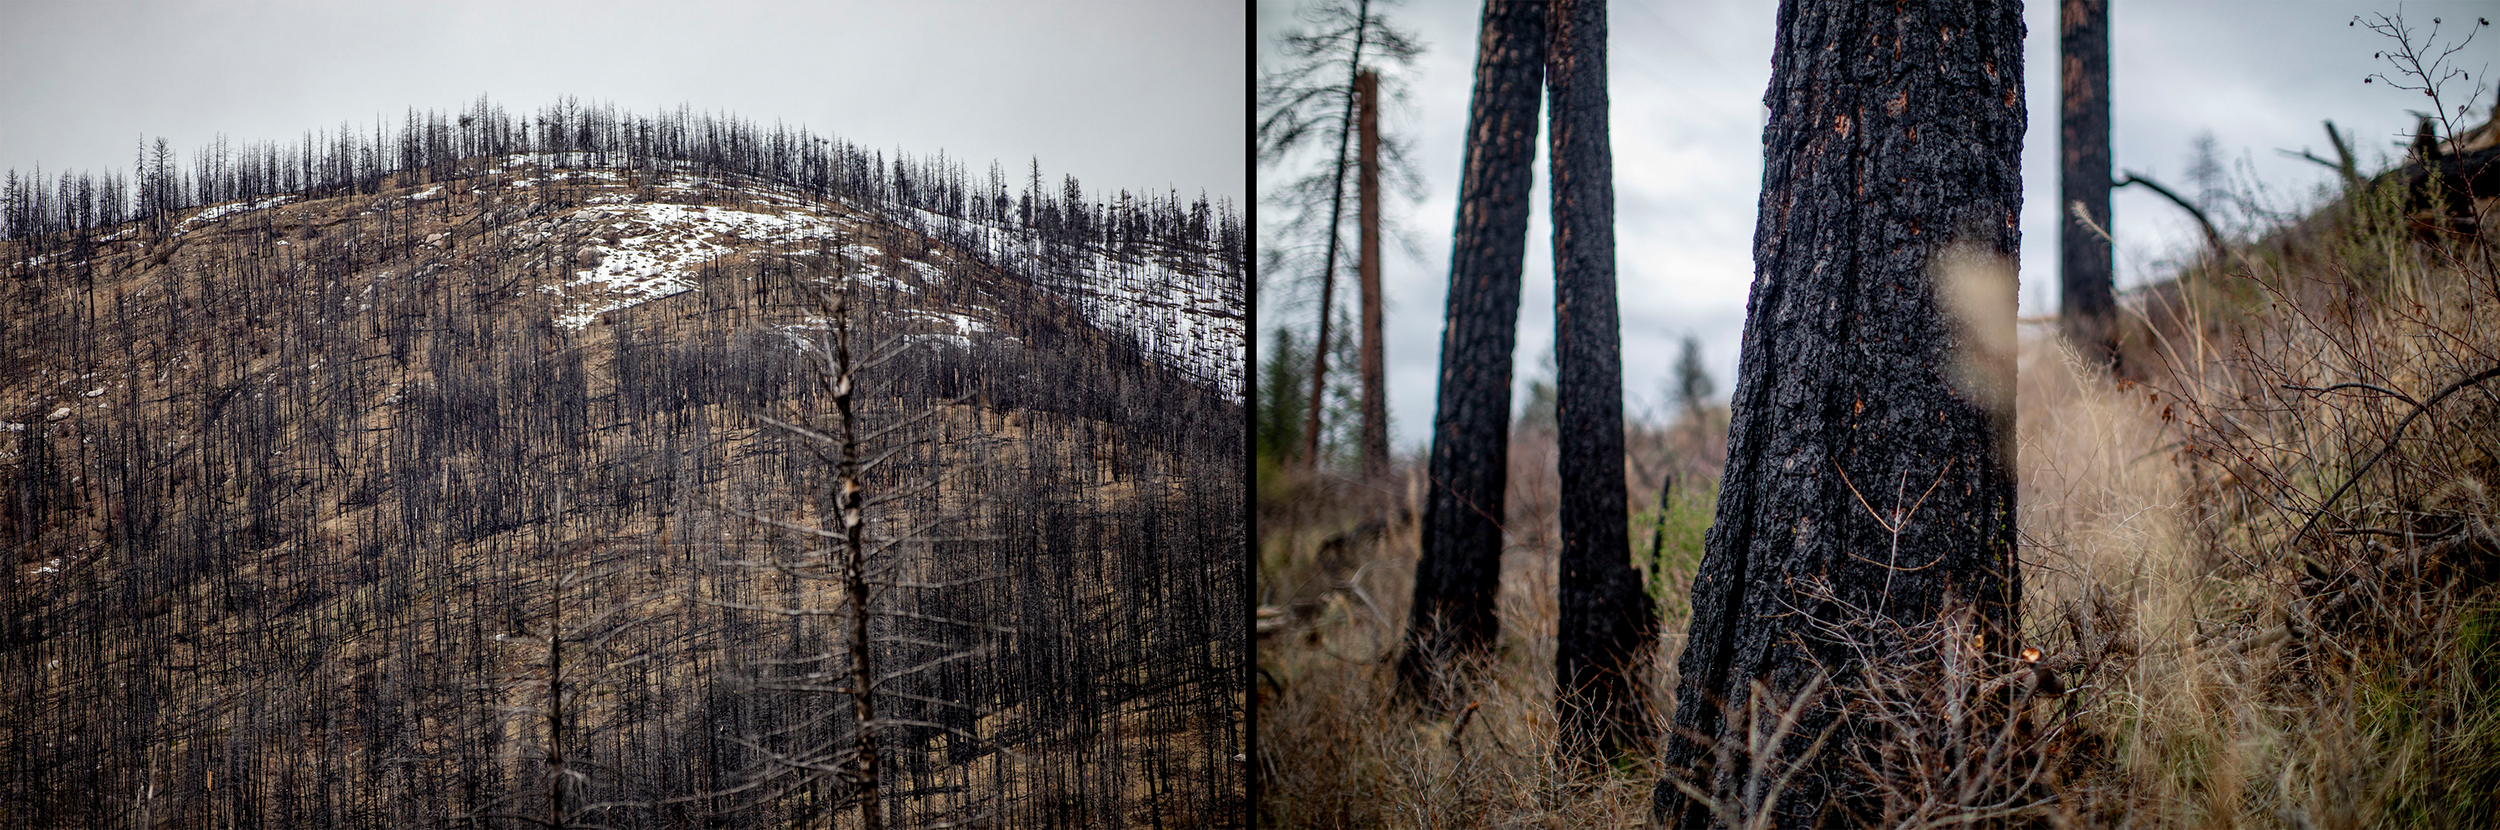 Evidence from previous wildfires in the Methow Valley